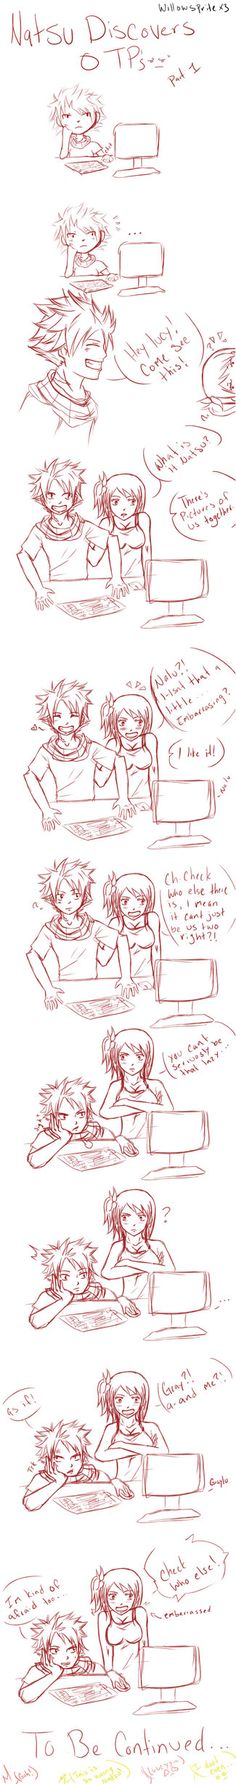 Natsu discovers OTP's - Nalu I by willowspritex3 on DeviantArt